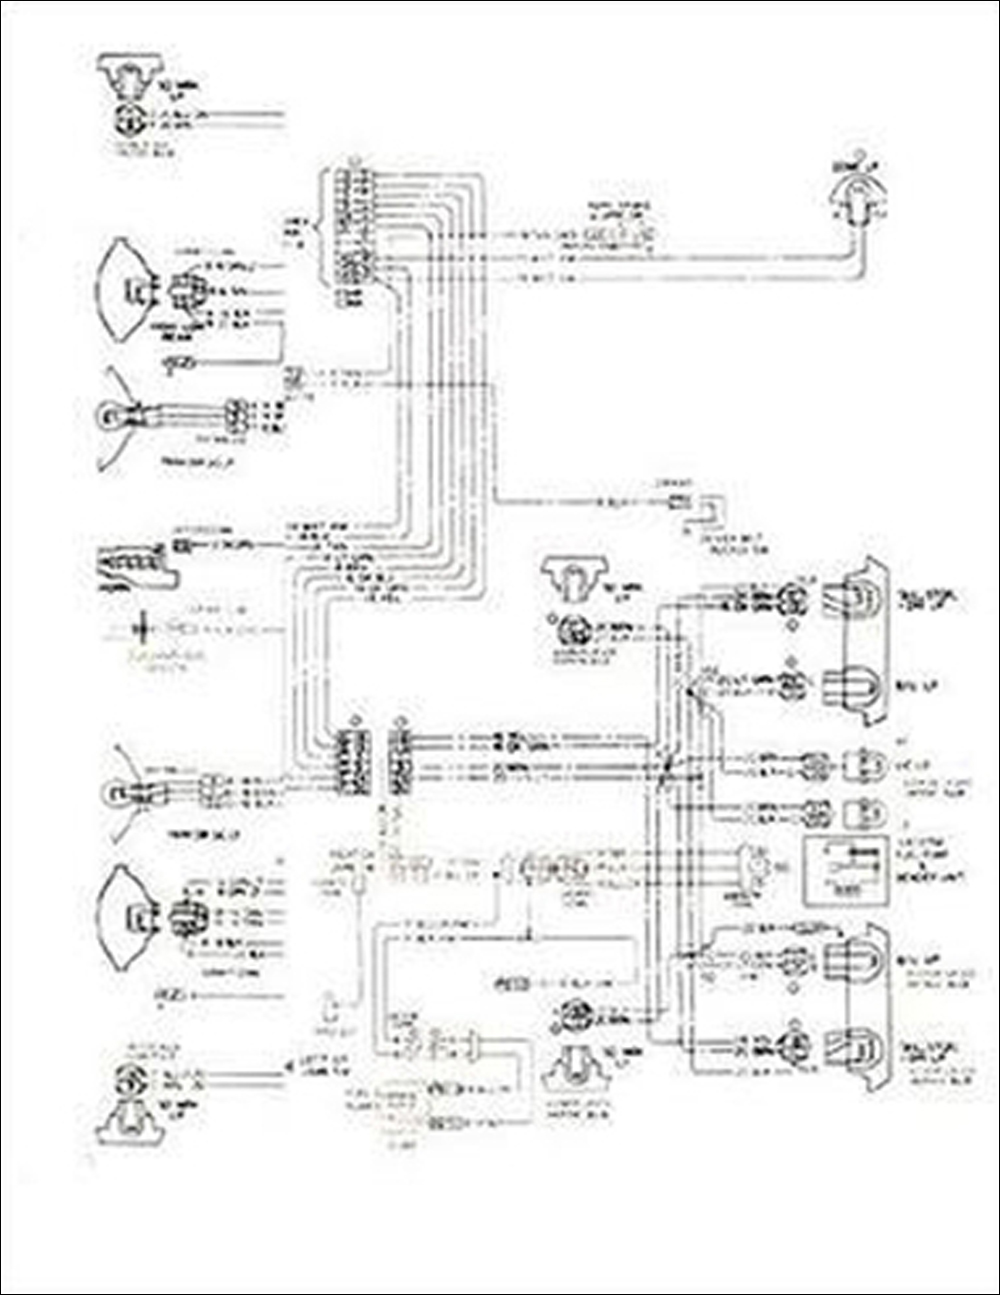 1977 Camaro Wiring Diagram Schematics Diagrams 1997 Chevy Foldout Original Lt Rs And Z28 Rh Faxonautoliterature Com Engine 1981